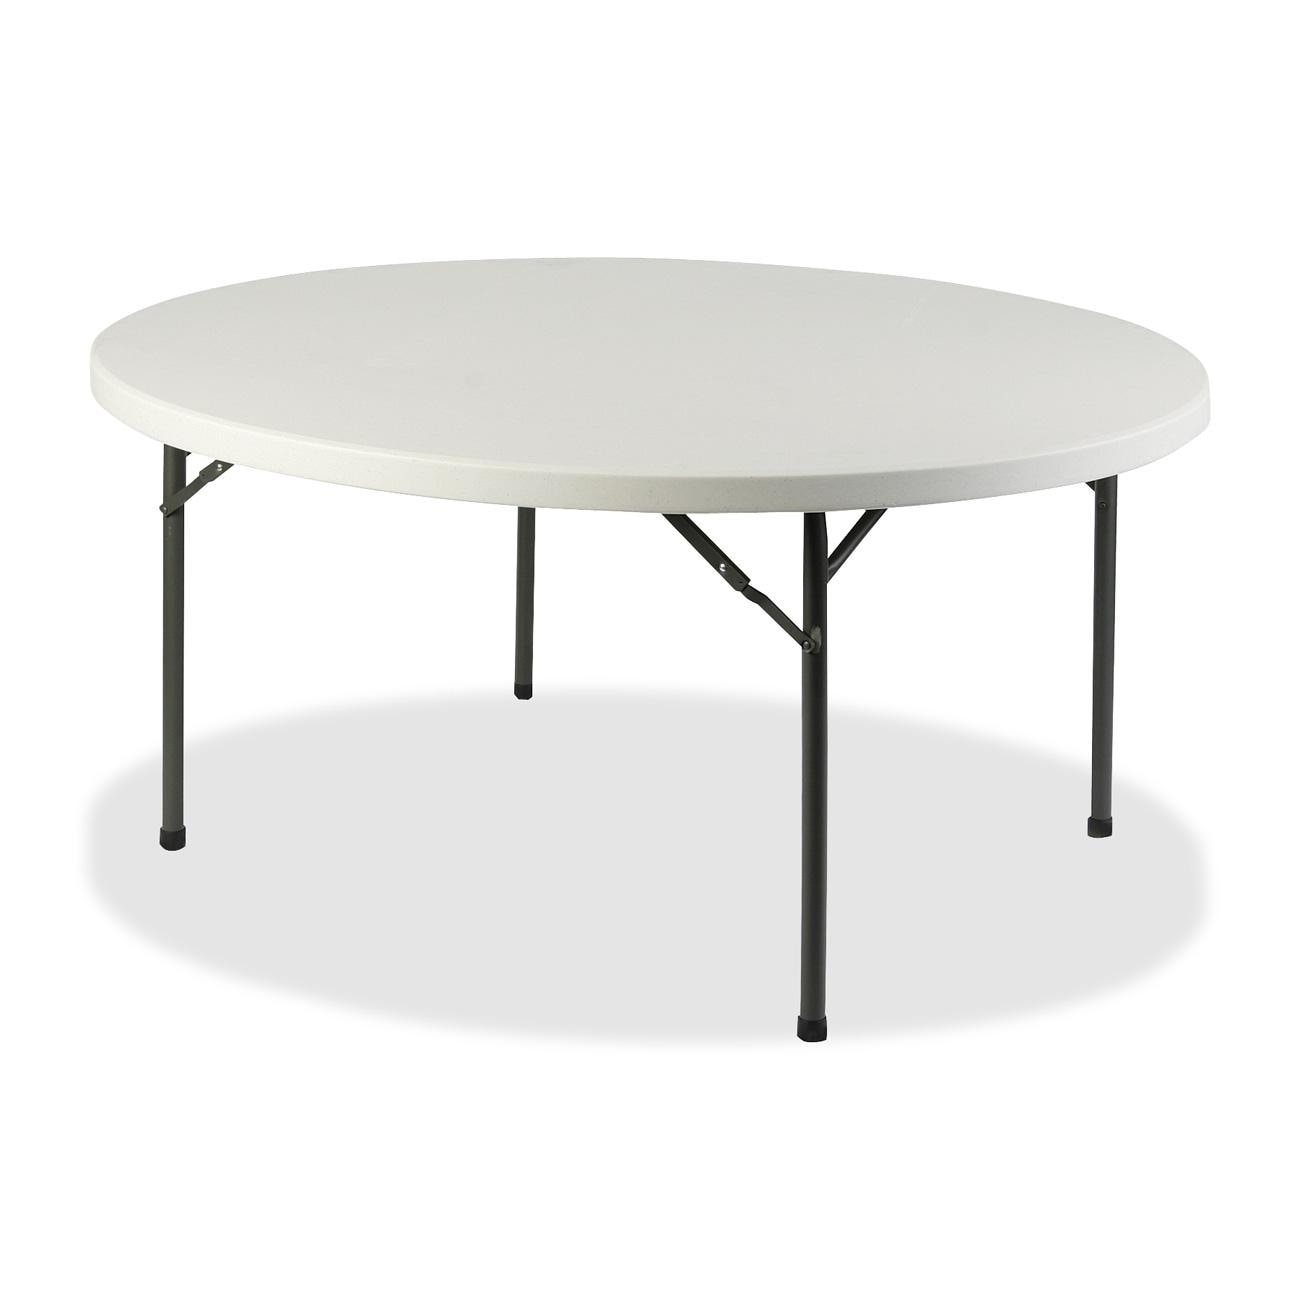 - Shop Lorell Platinum 60-inch Round Banquet Folding Table